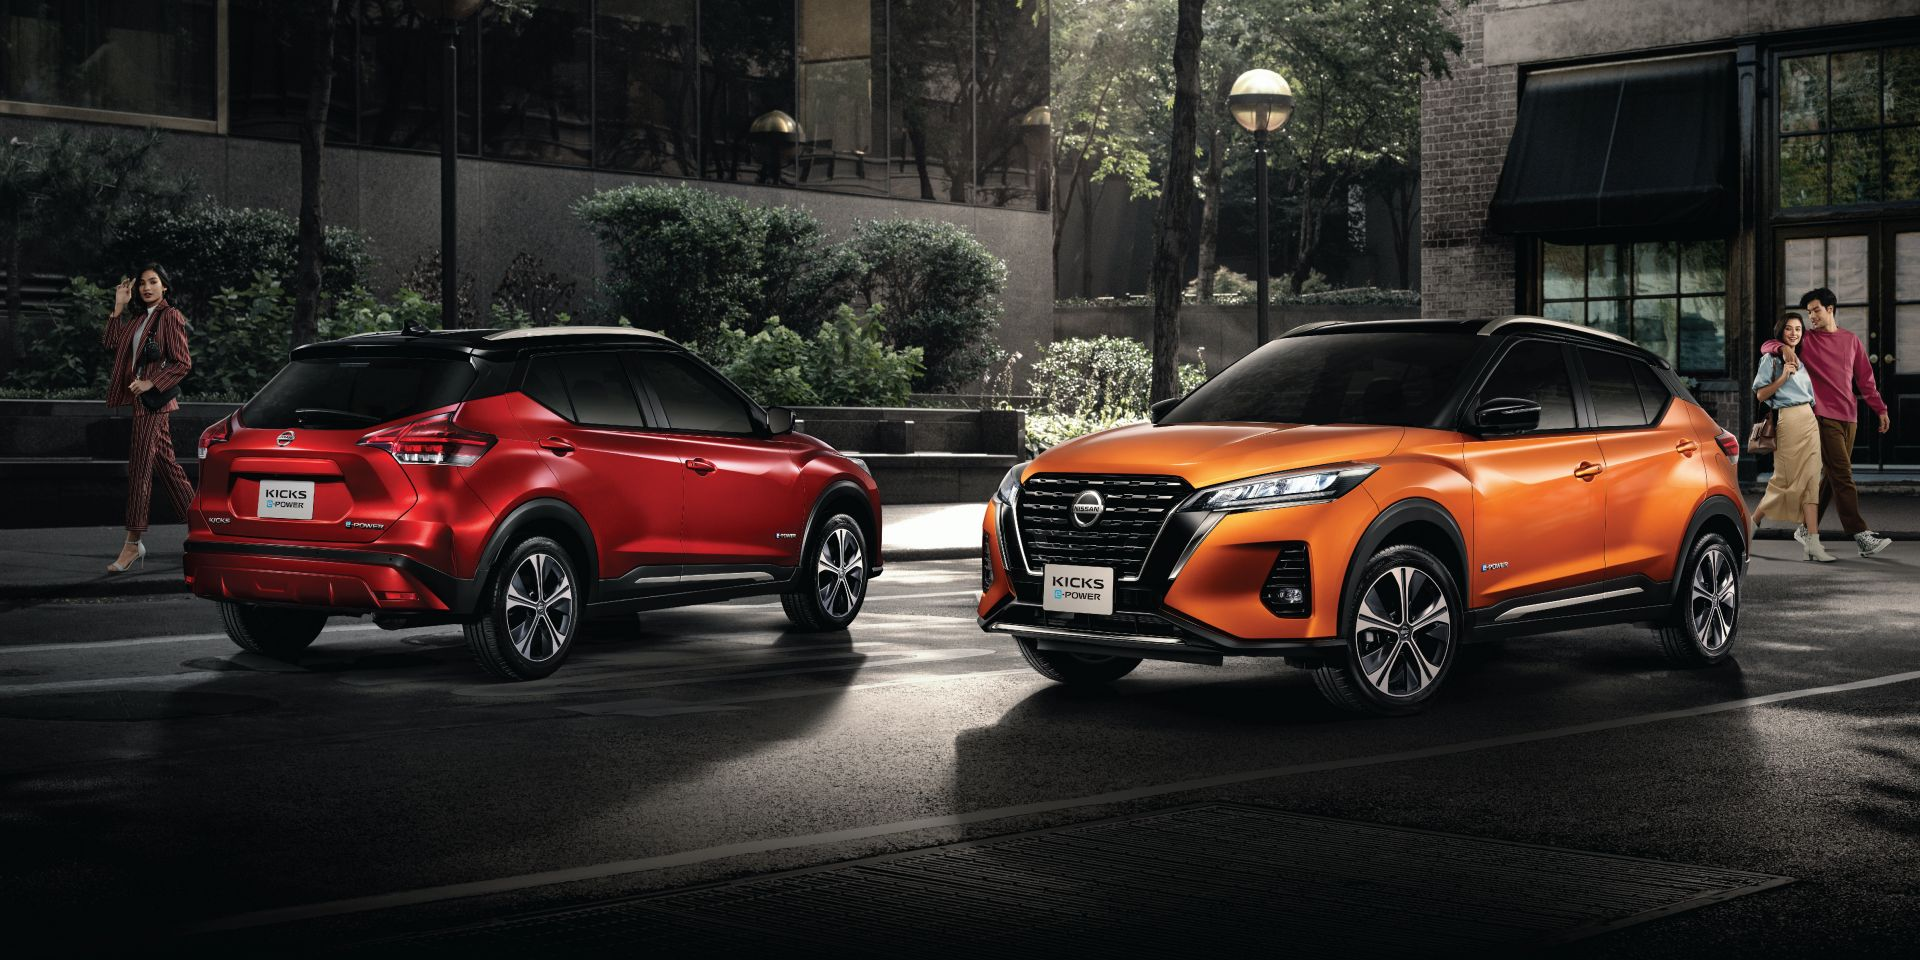 Nissan-Kicks-e-Power-facelift-2021-6